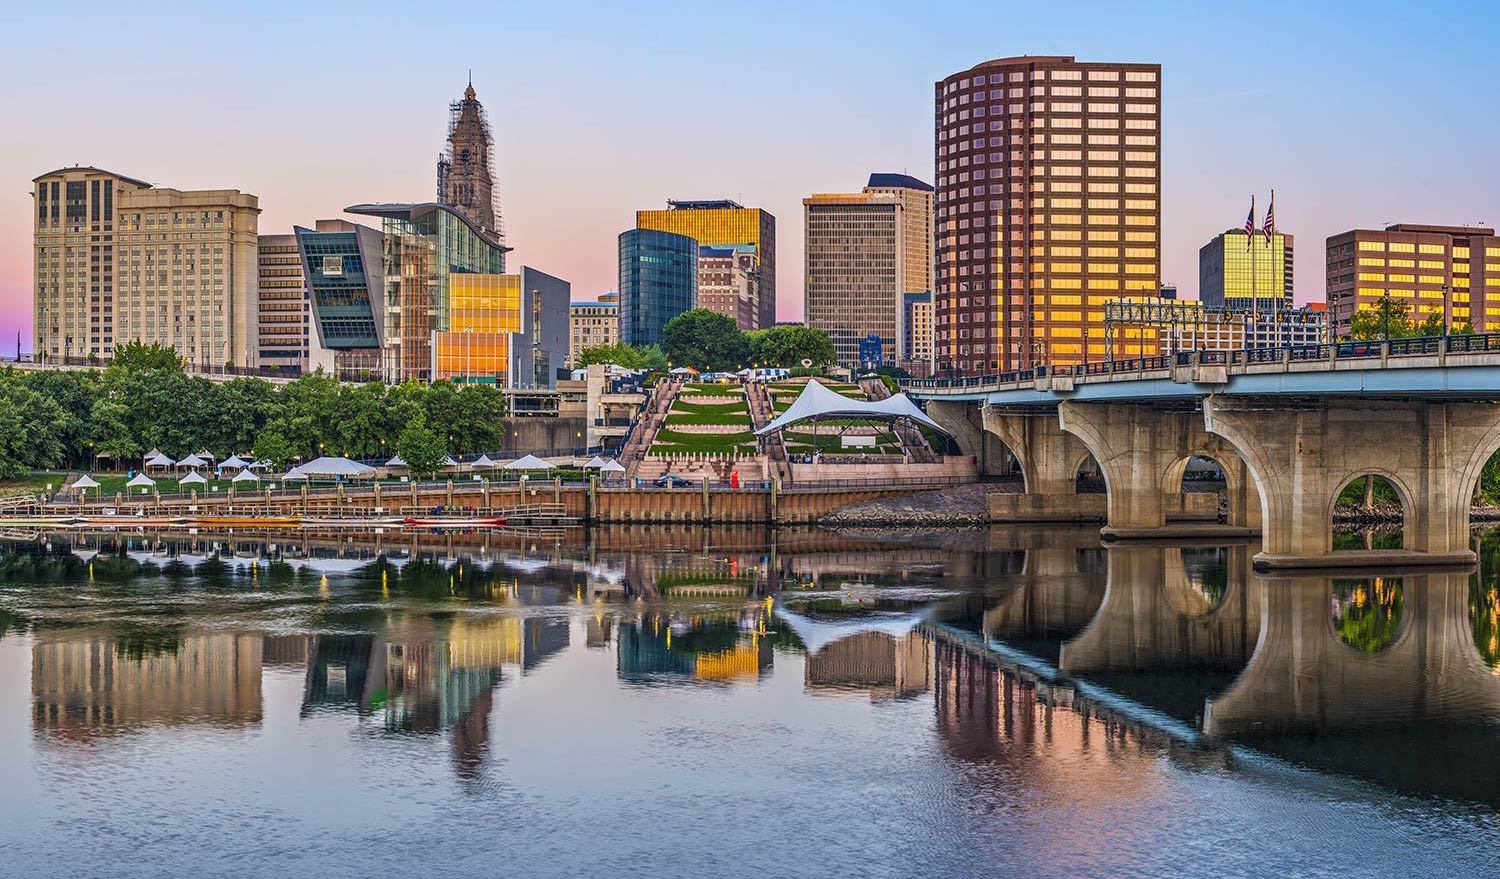 A concrete bridge over a river leads into downtown Hartford